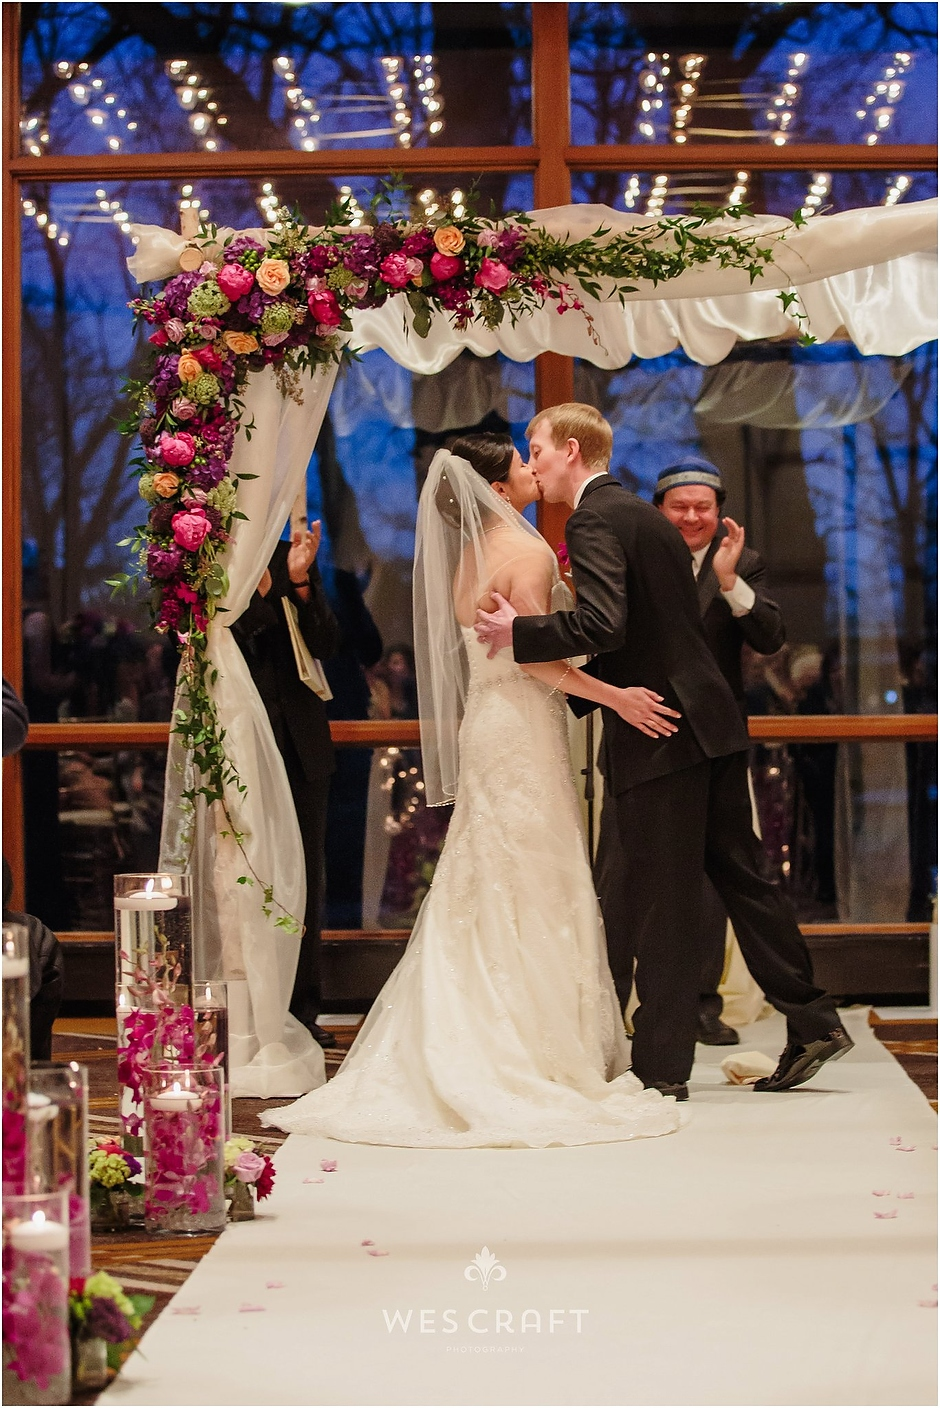 Hyatt-Lodge-Oak-Brook-Wedding-0030-blog